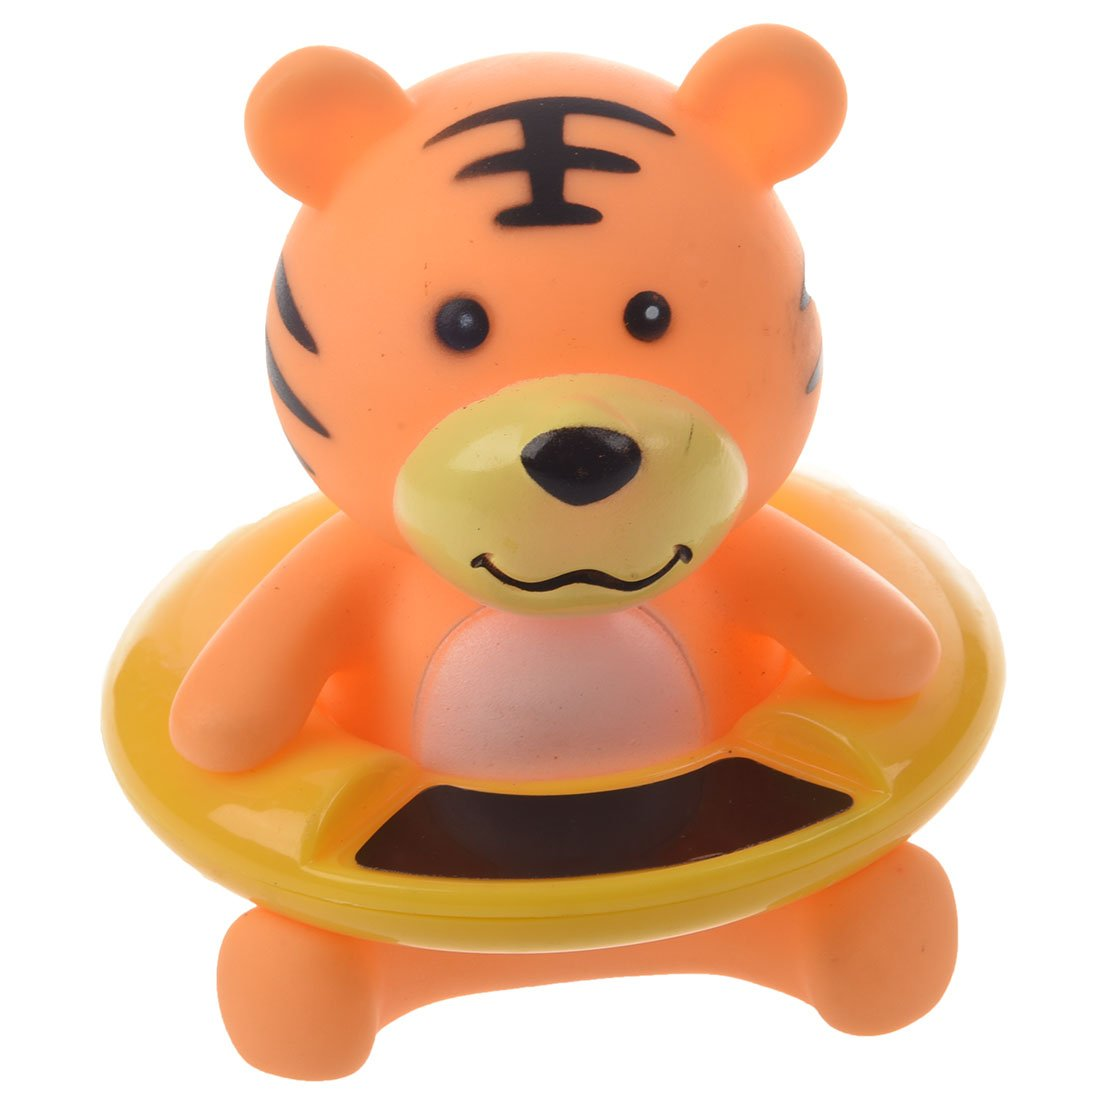 SODIAL(R) Tiger Shaped Baby Bath Water Temperature Measuring Tool 009006